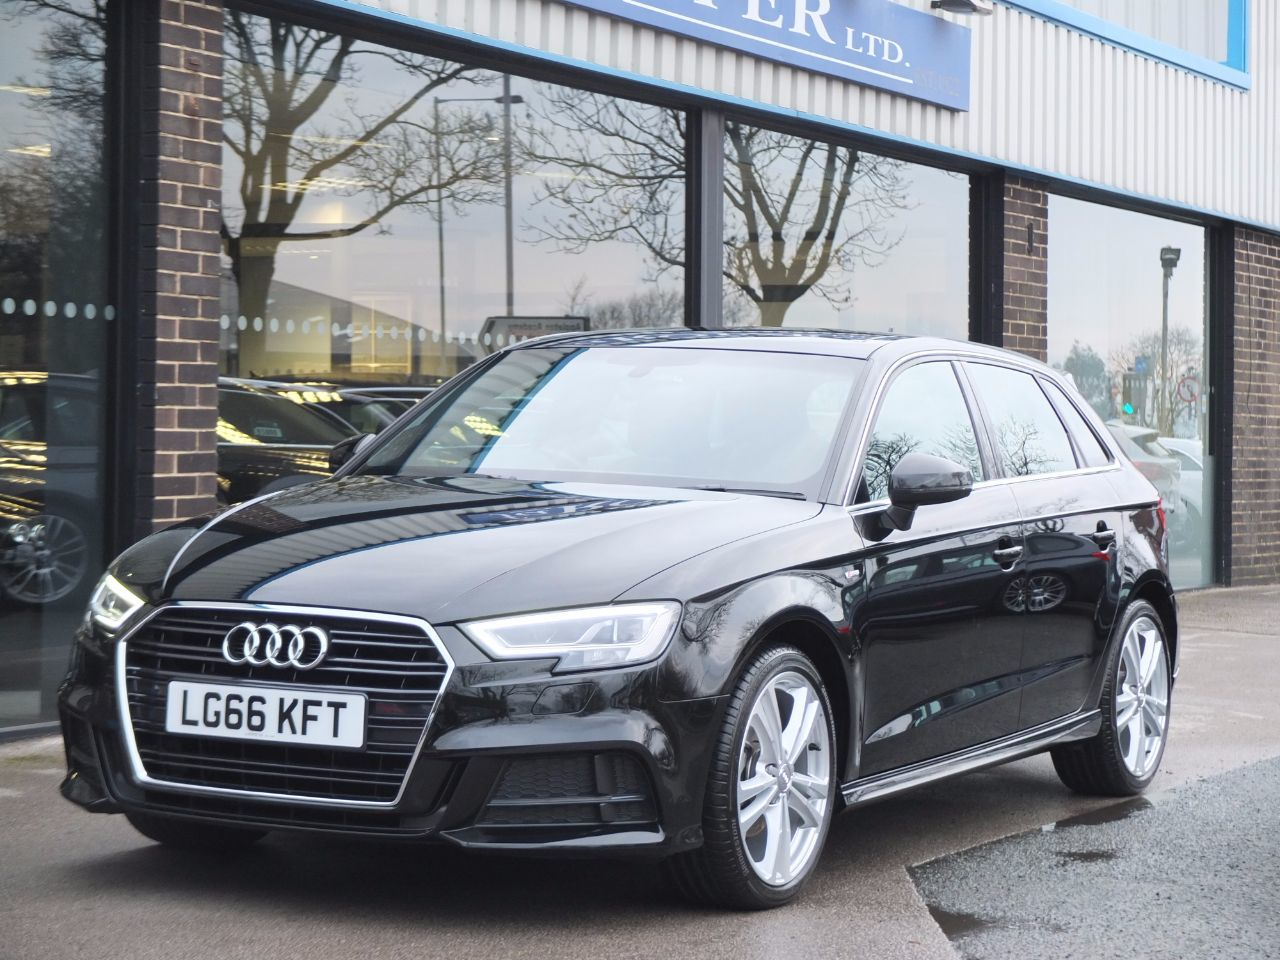 Audi A3 Sportback 1.4 TFSI S Line S Tronic (Cylinder on Demand) Hatchback Petrol Mythos Black MetallicAudi A3 Sportback 1.4 TFSI S Line S Tronic (Cylinder on Demand) Hatchback Petrol Mythos Black Metallic at fa Roper Ltd Bradford